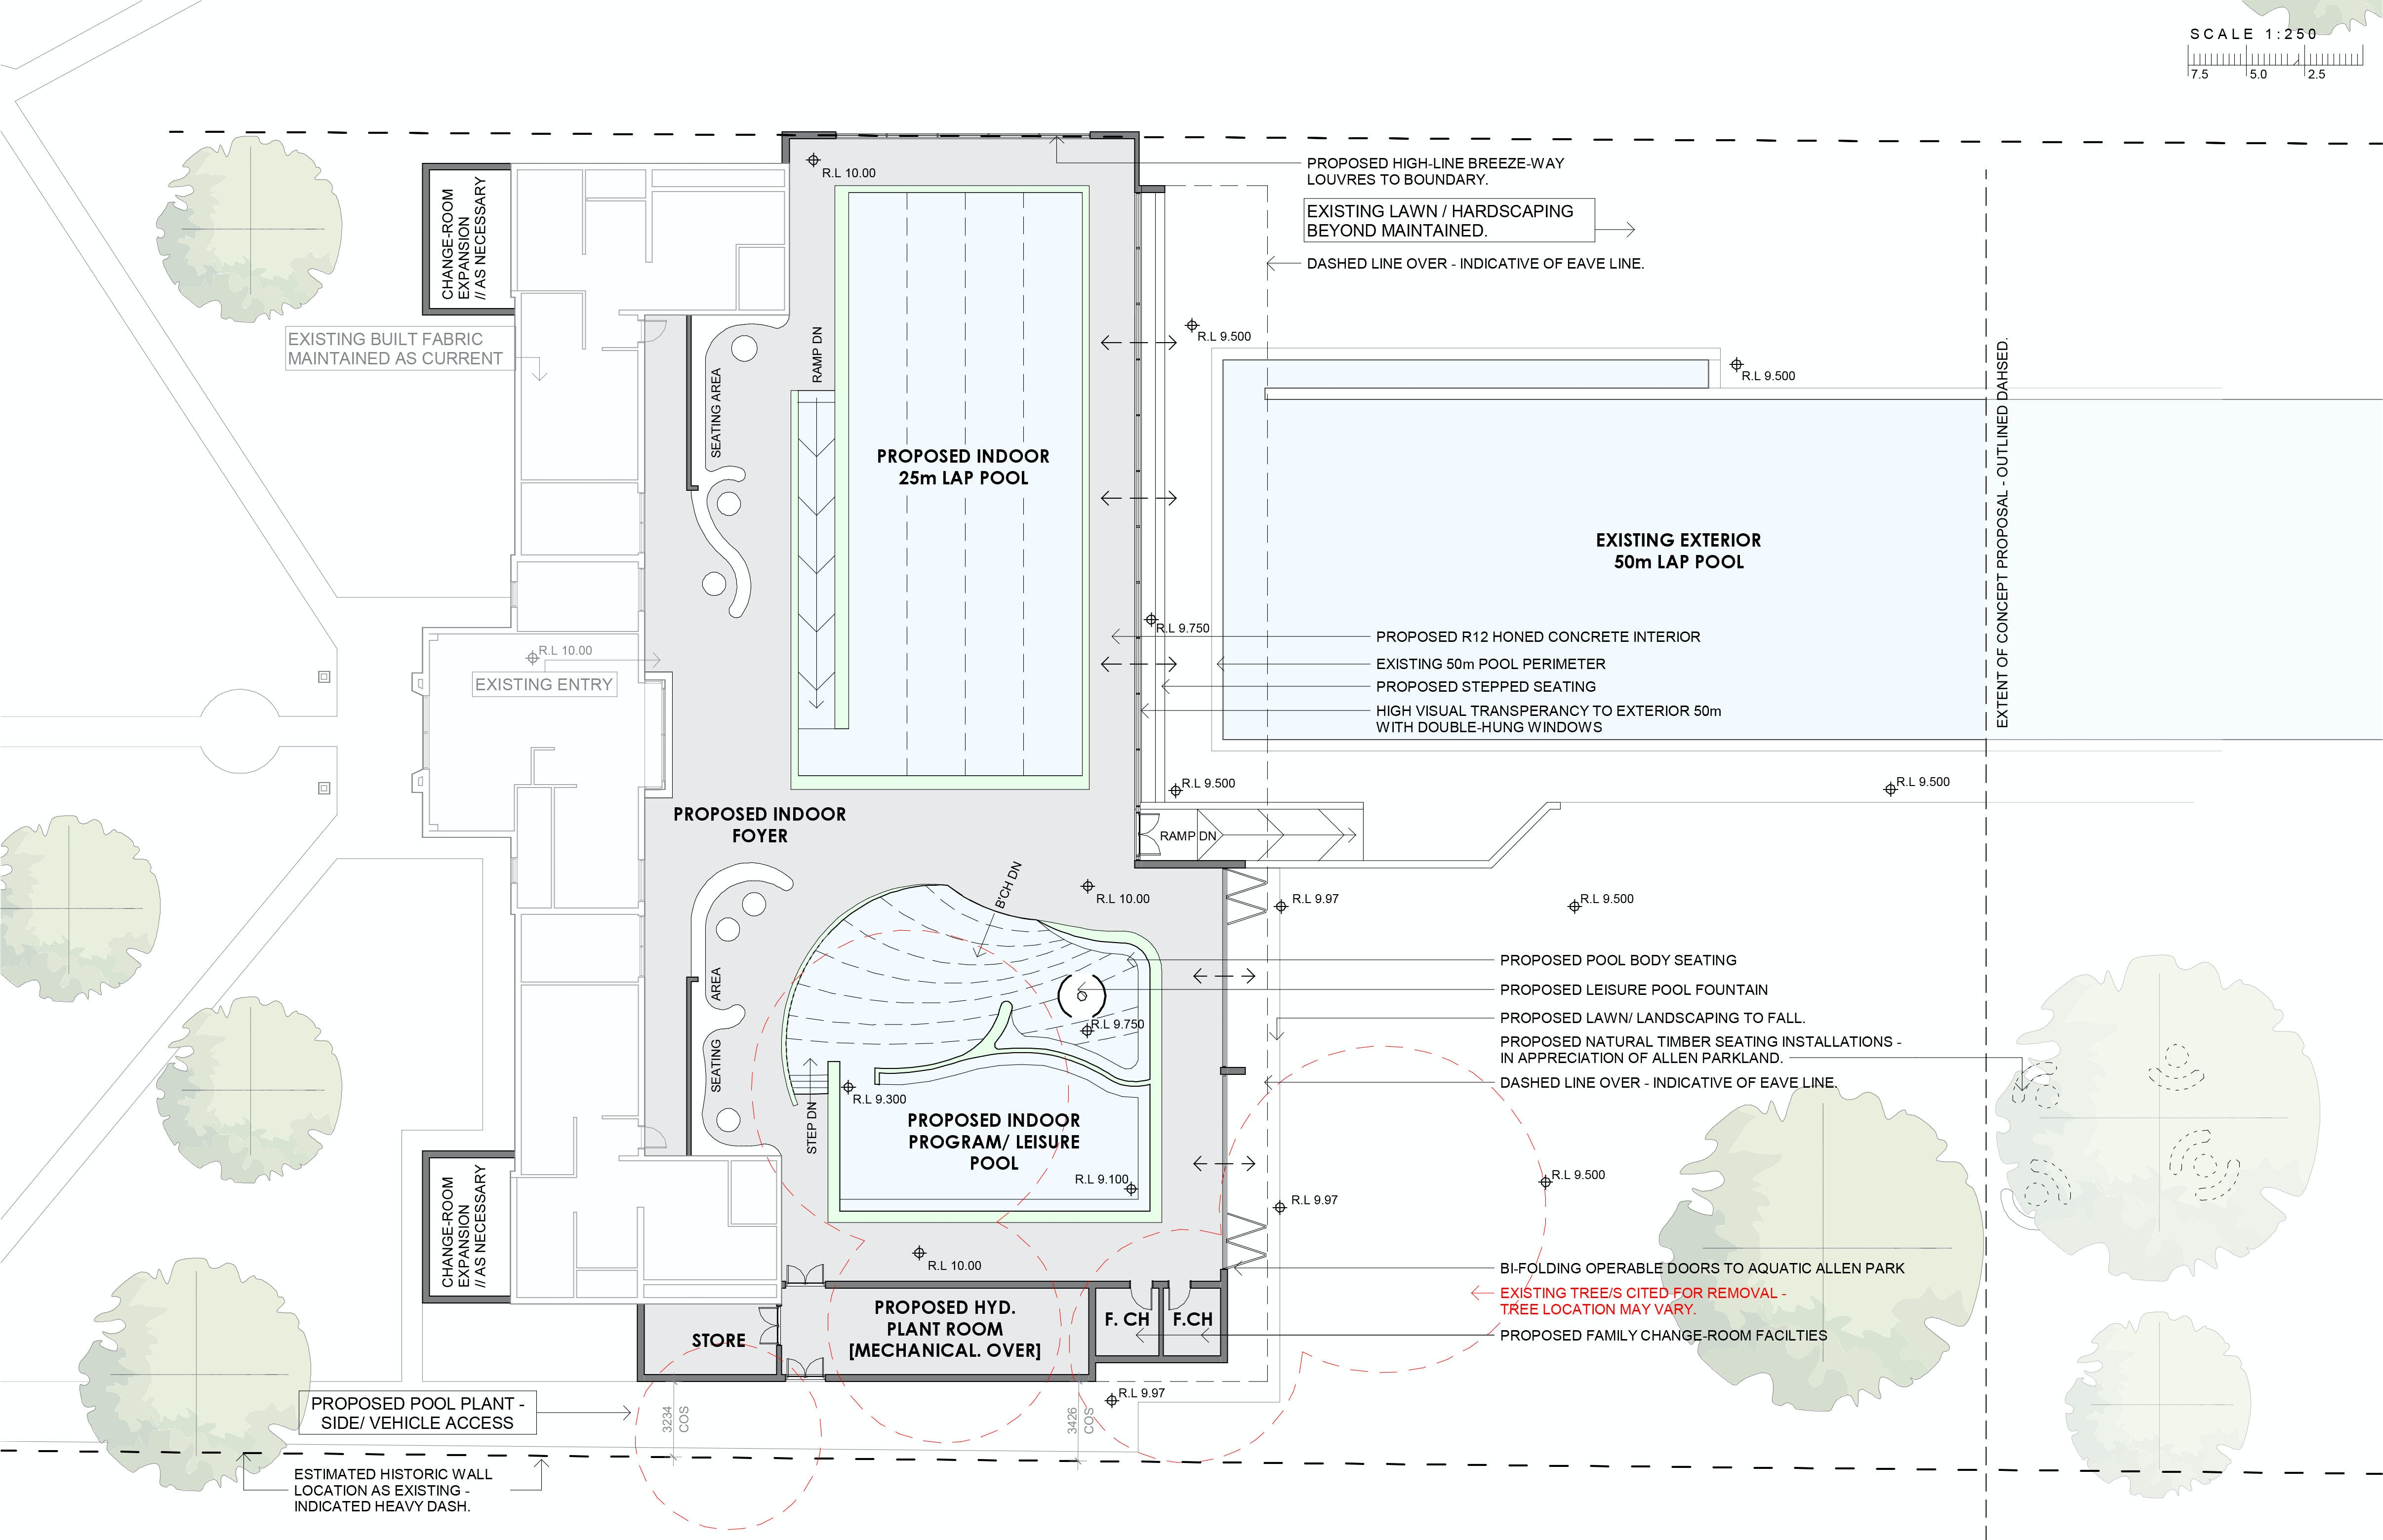 Option Two - New Enclosed Indoor Program/ Leisure Pool with New 25m Lap Pool